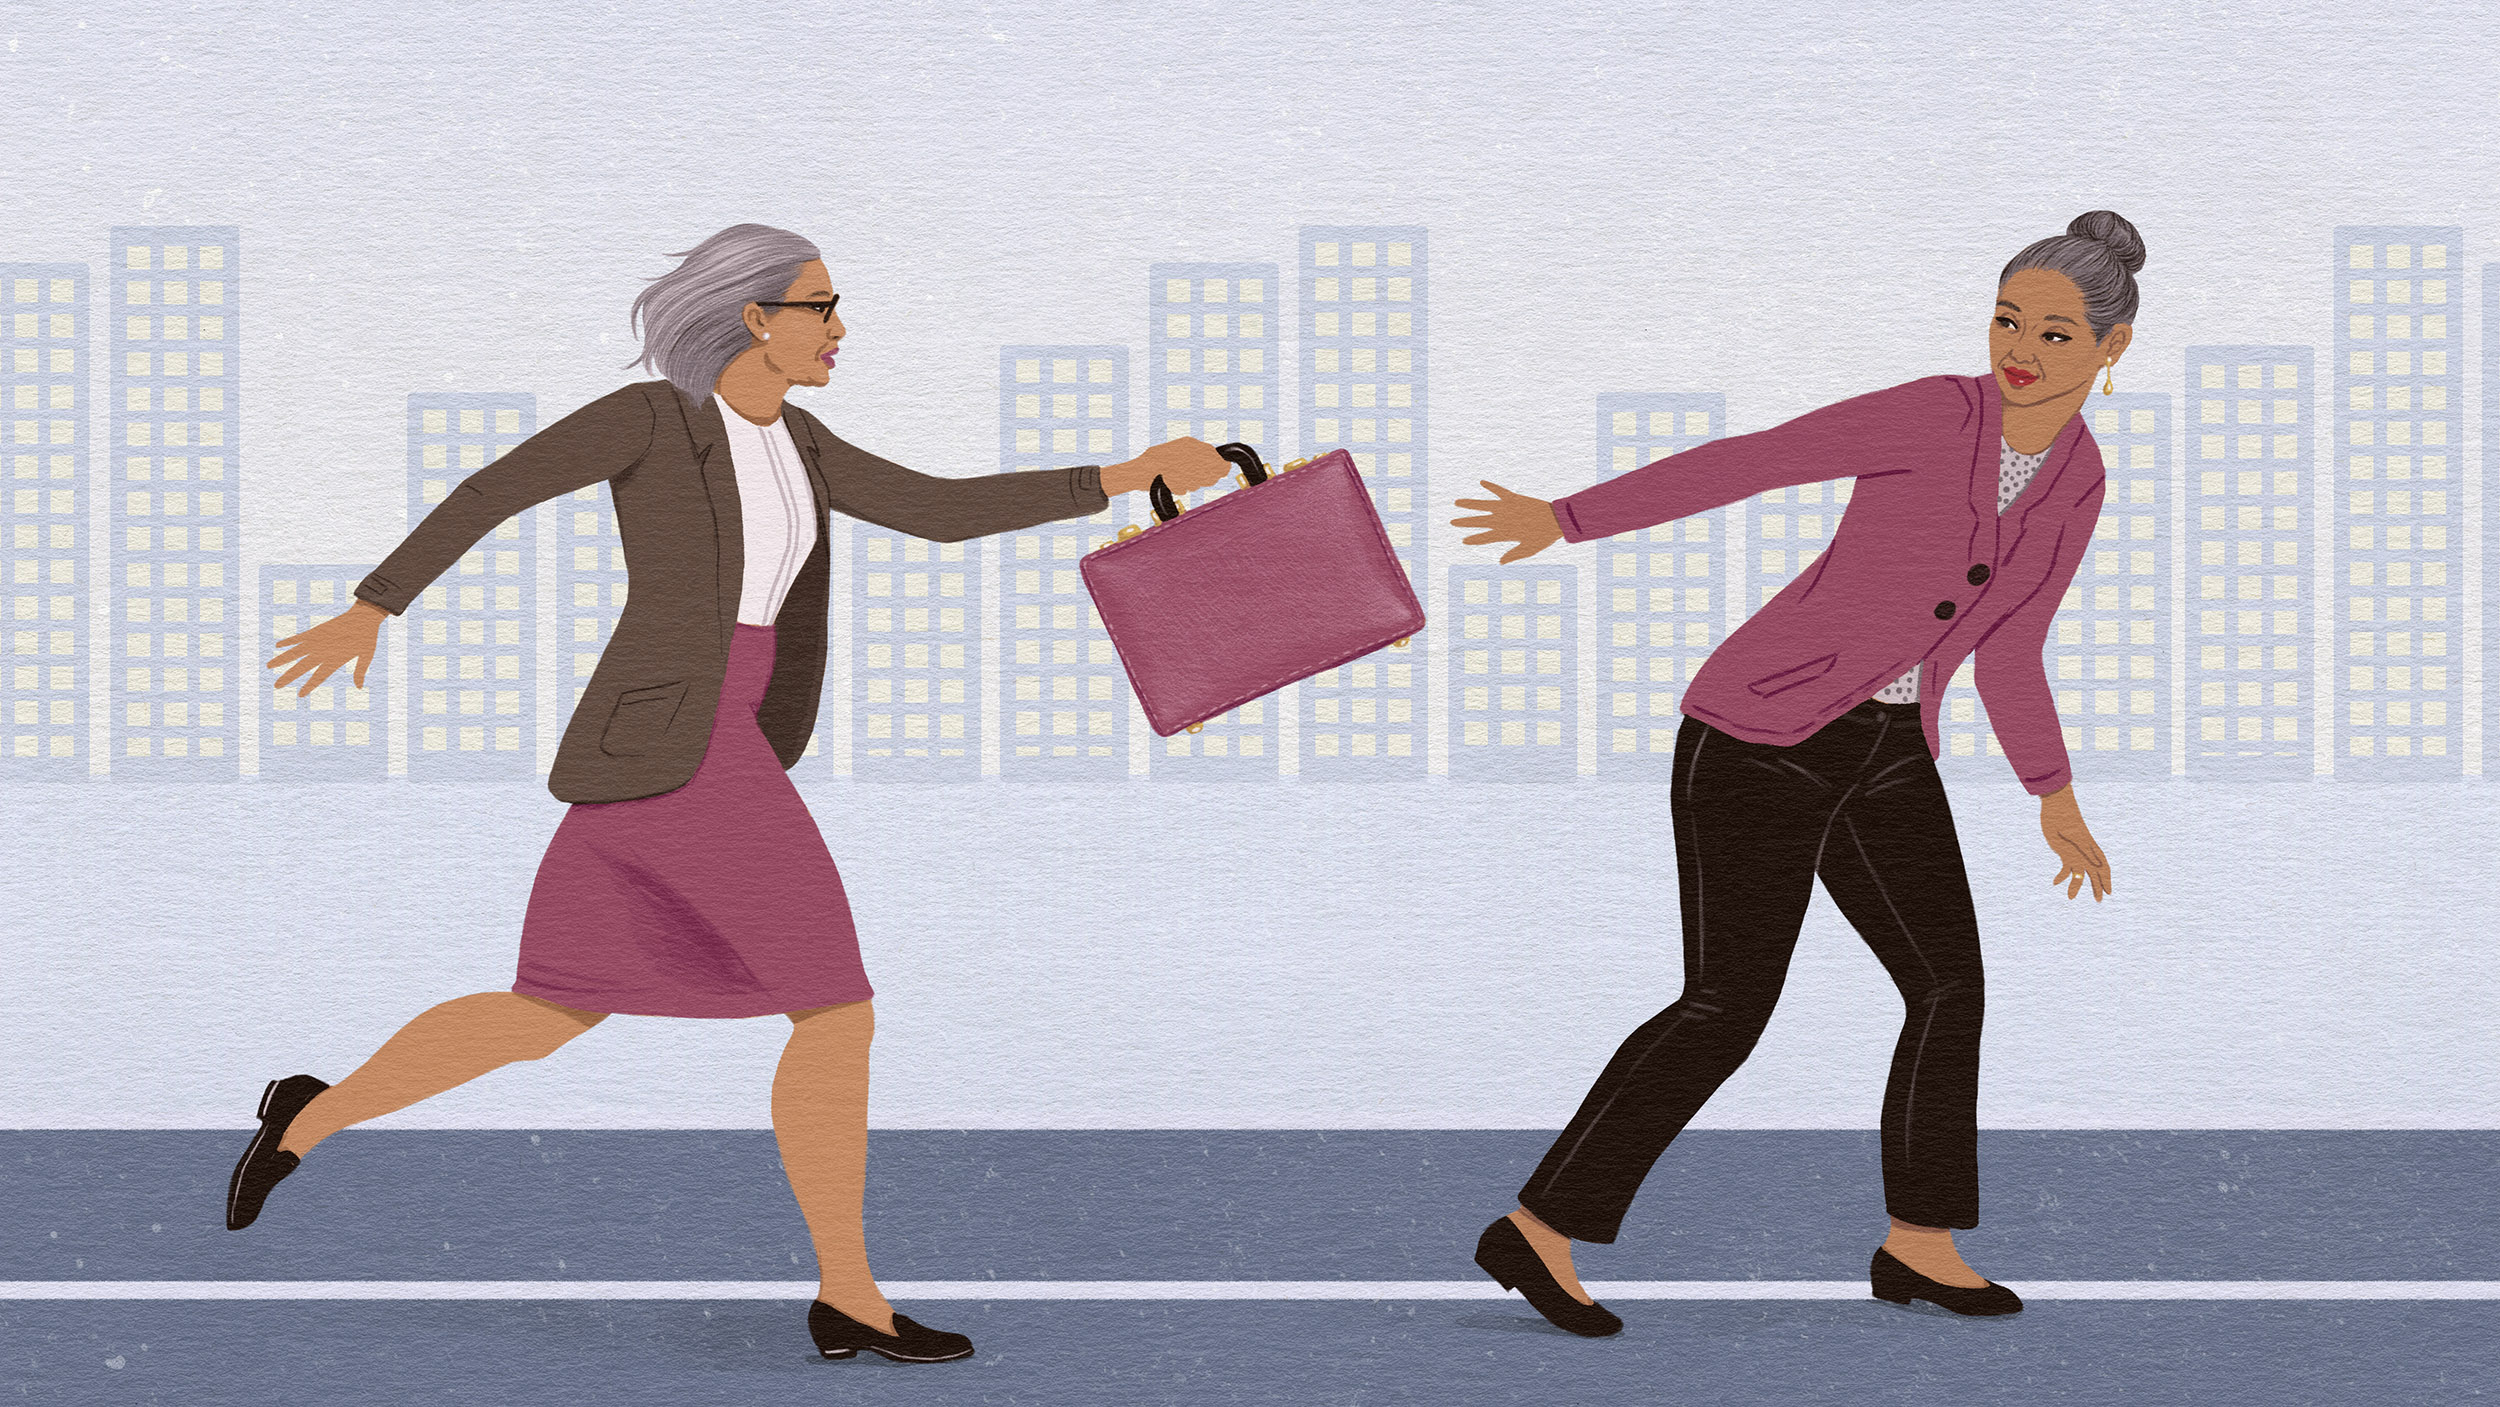 Illustration of one business woman passing a briefcase to another business woman as if in a relay race.